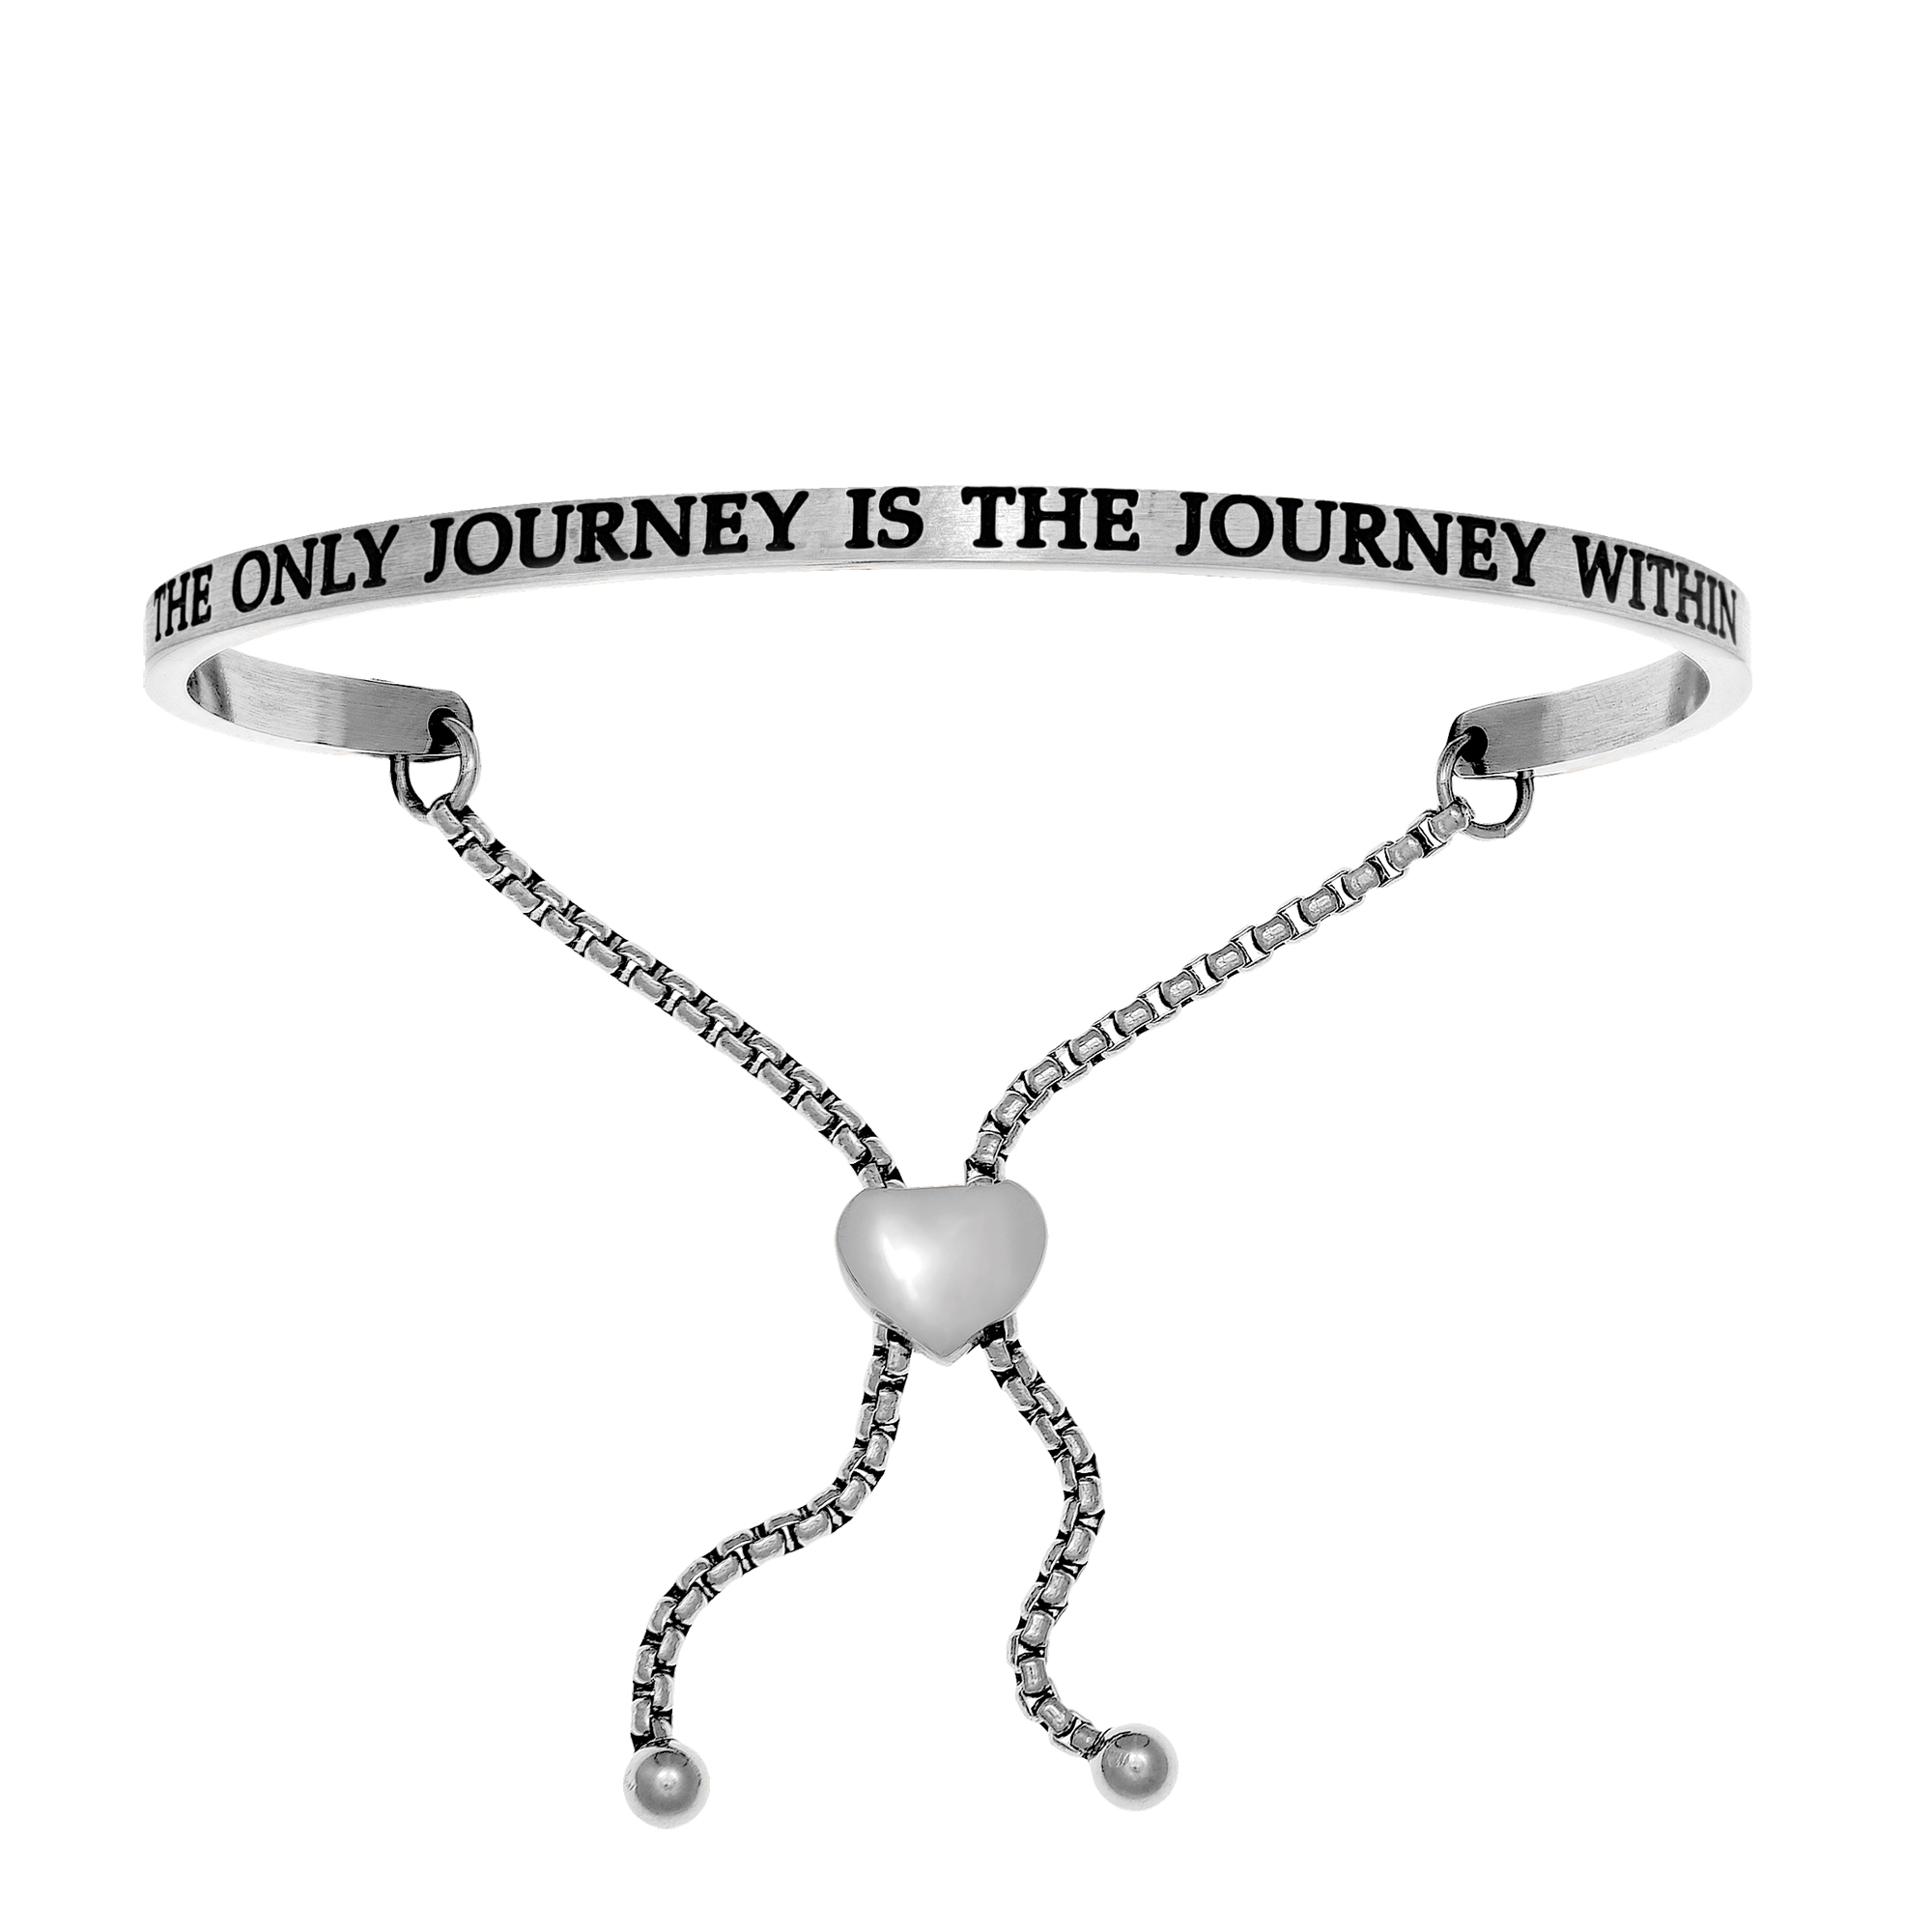 Intuitions Stainless Steel THE ONLY JOURNEY IS THE JOURNEY IN Diamond Accent Adjustable Bracelet Each of these bracelets carries a personal message of inspiration, spirituality or just plain fun. Meant to be worn alone or stacked together for a smart, contemporary look, they're a great self-purchase or as a gift for family or friends. Intuitions are made of stainless steel and come in two styles standard cuff or friendship and fit practically any wrist. Intuitions Jewelry makes the difference in your daily life by designing and creating bracelets and bangles with motivational quotes to inspire you and your loved ones. Giving back $.25 of each bracelet to BABY2BABY